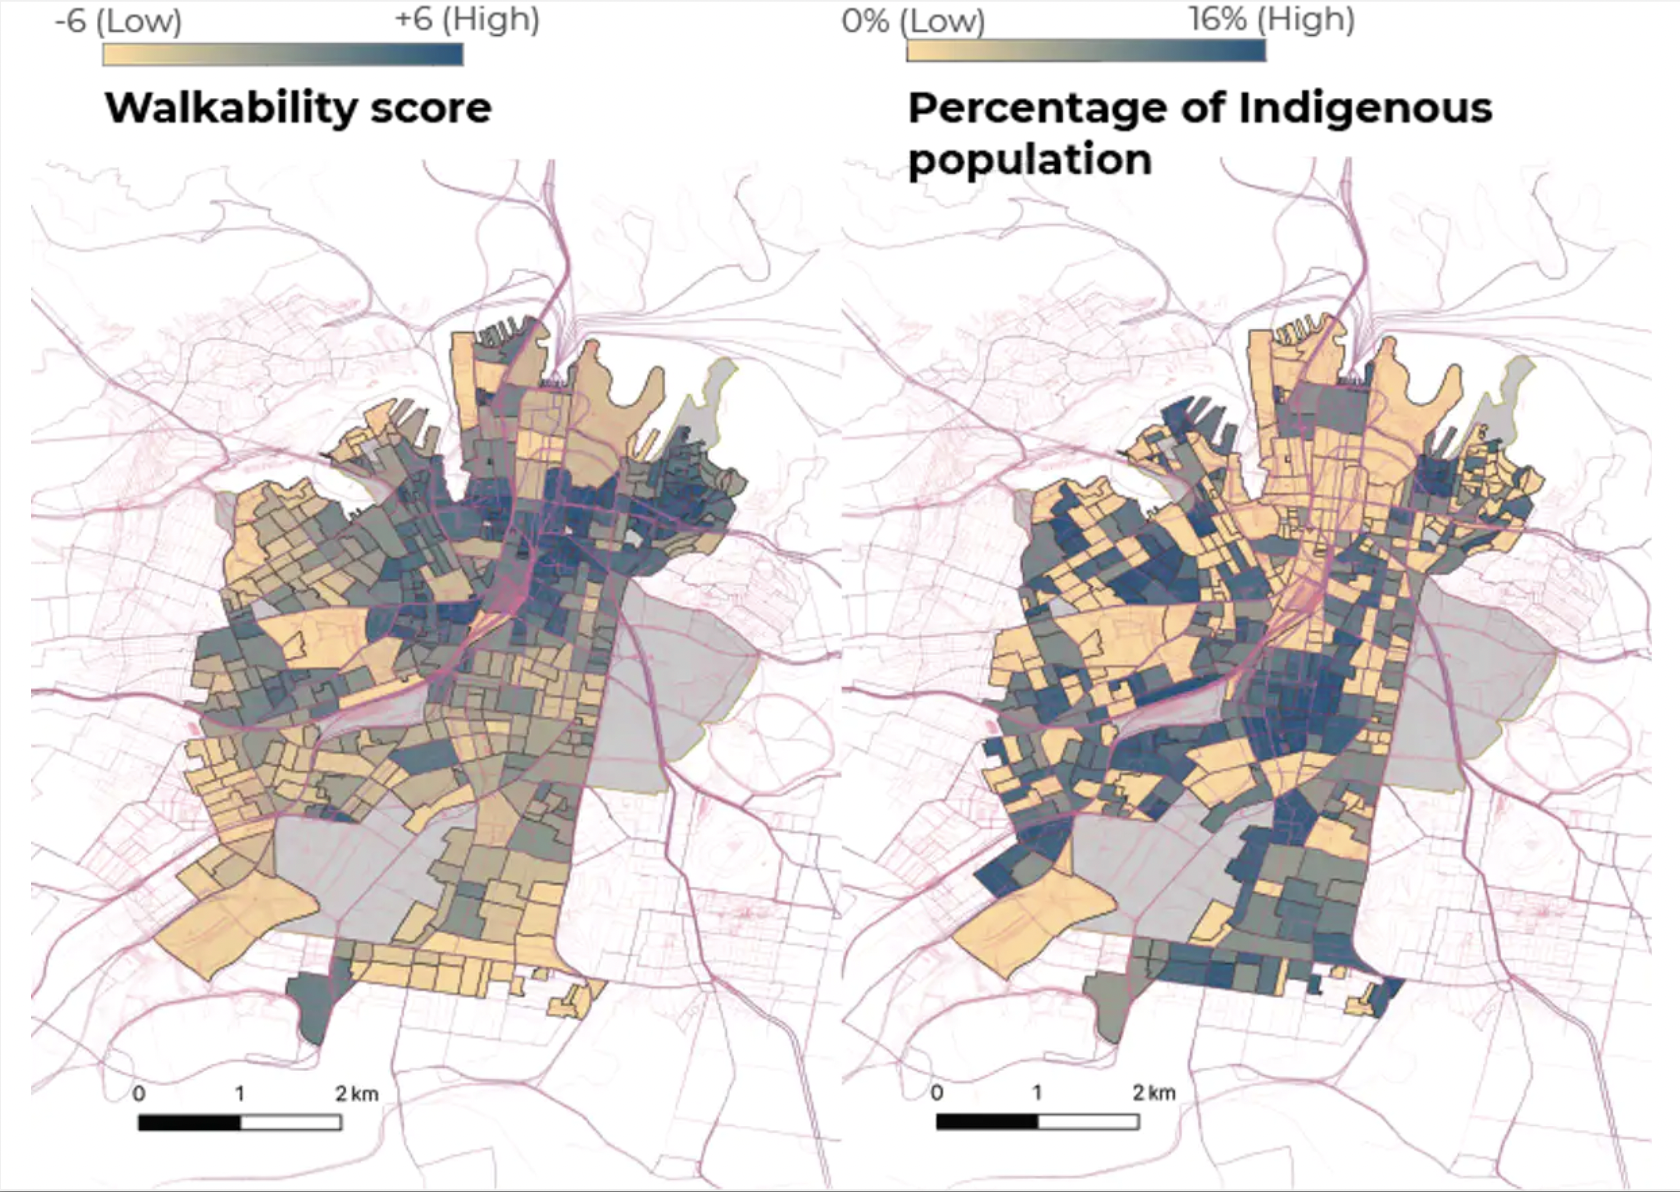 The walking disadvantage of Indigenous population of City of Sydney.